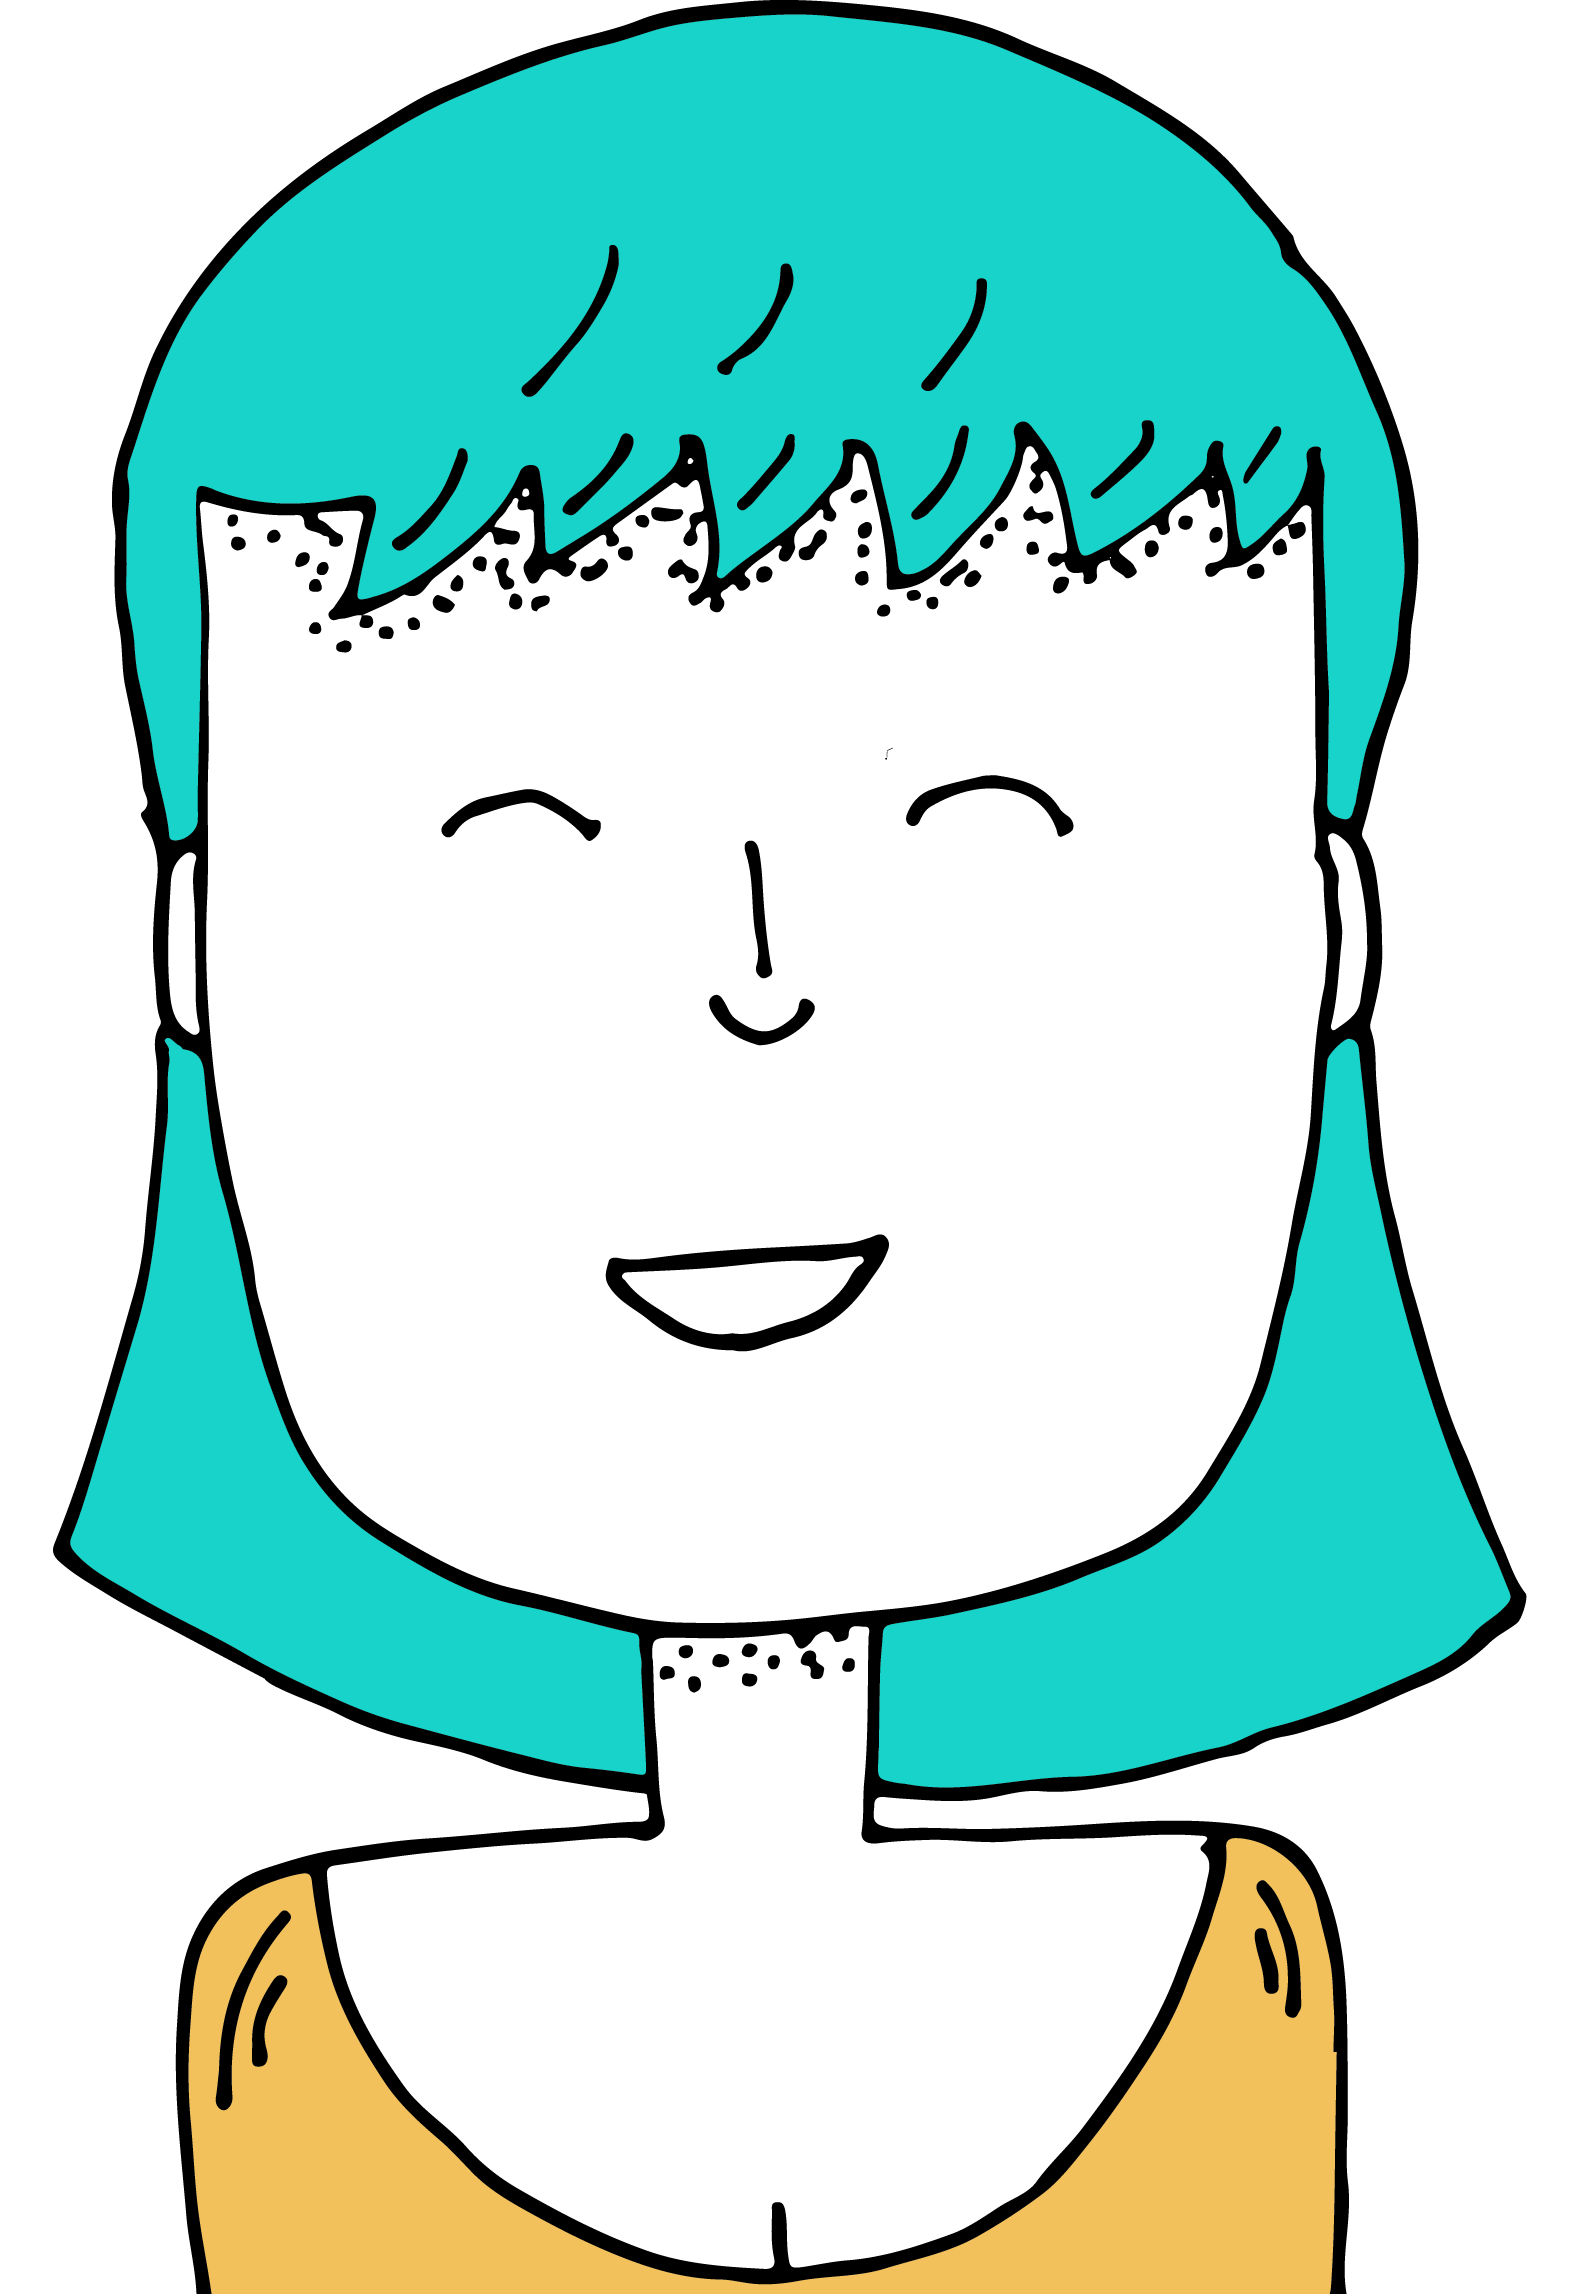 Worry clipart psychotherapy. Paige pradko my passion